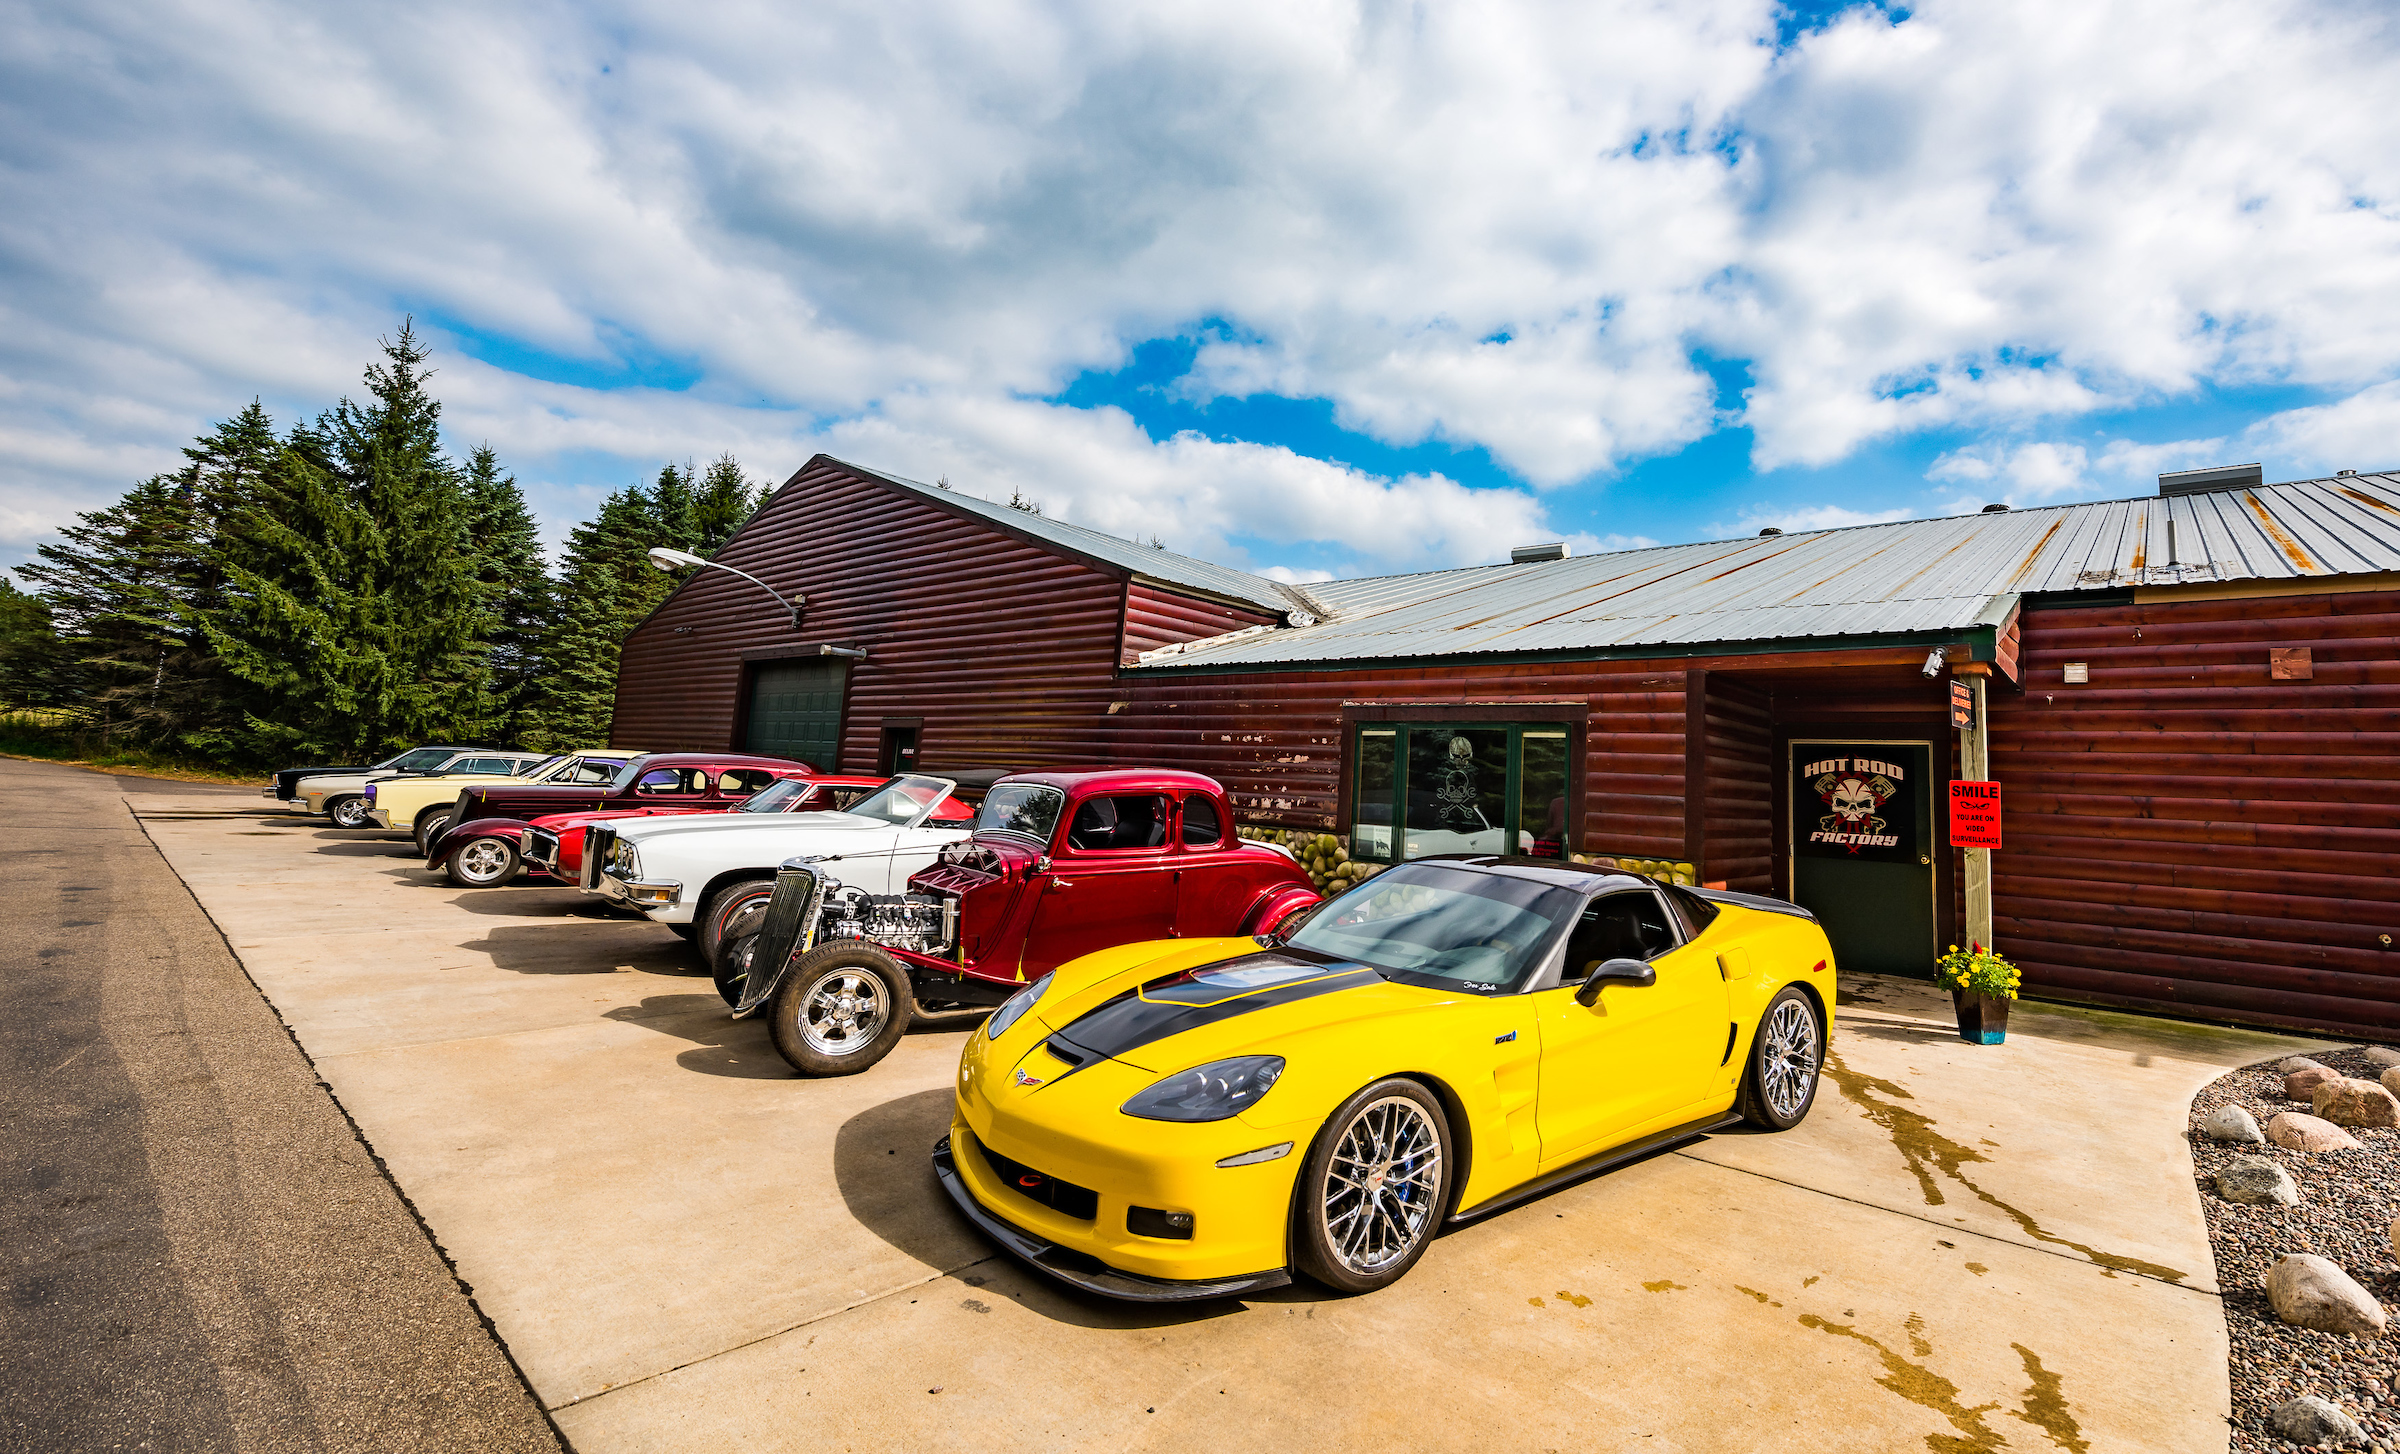 Minnesota Hot Rod Factory Headquarters and office